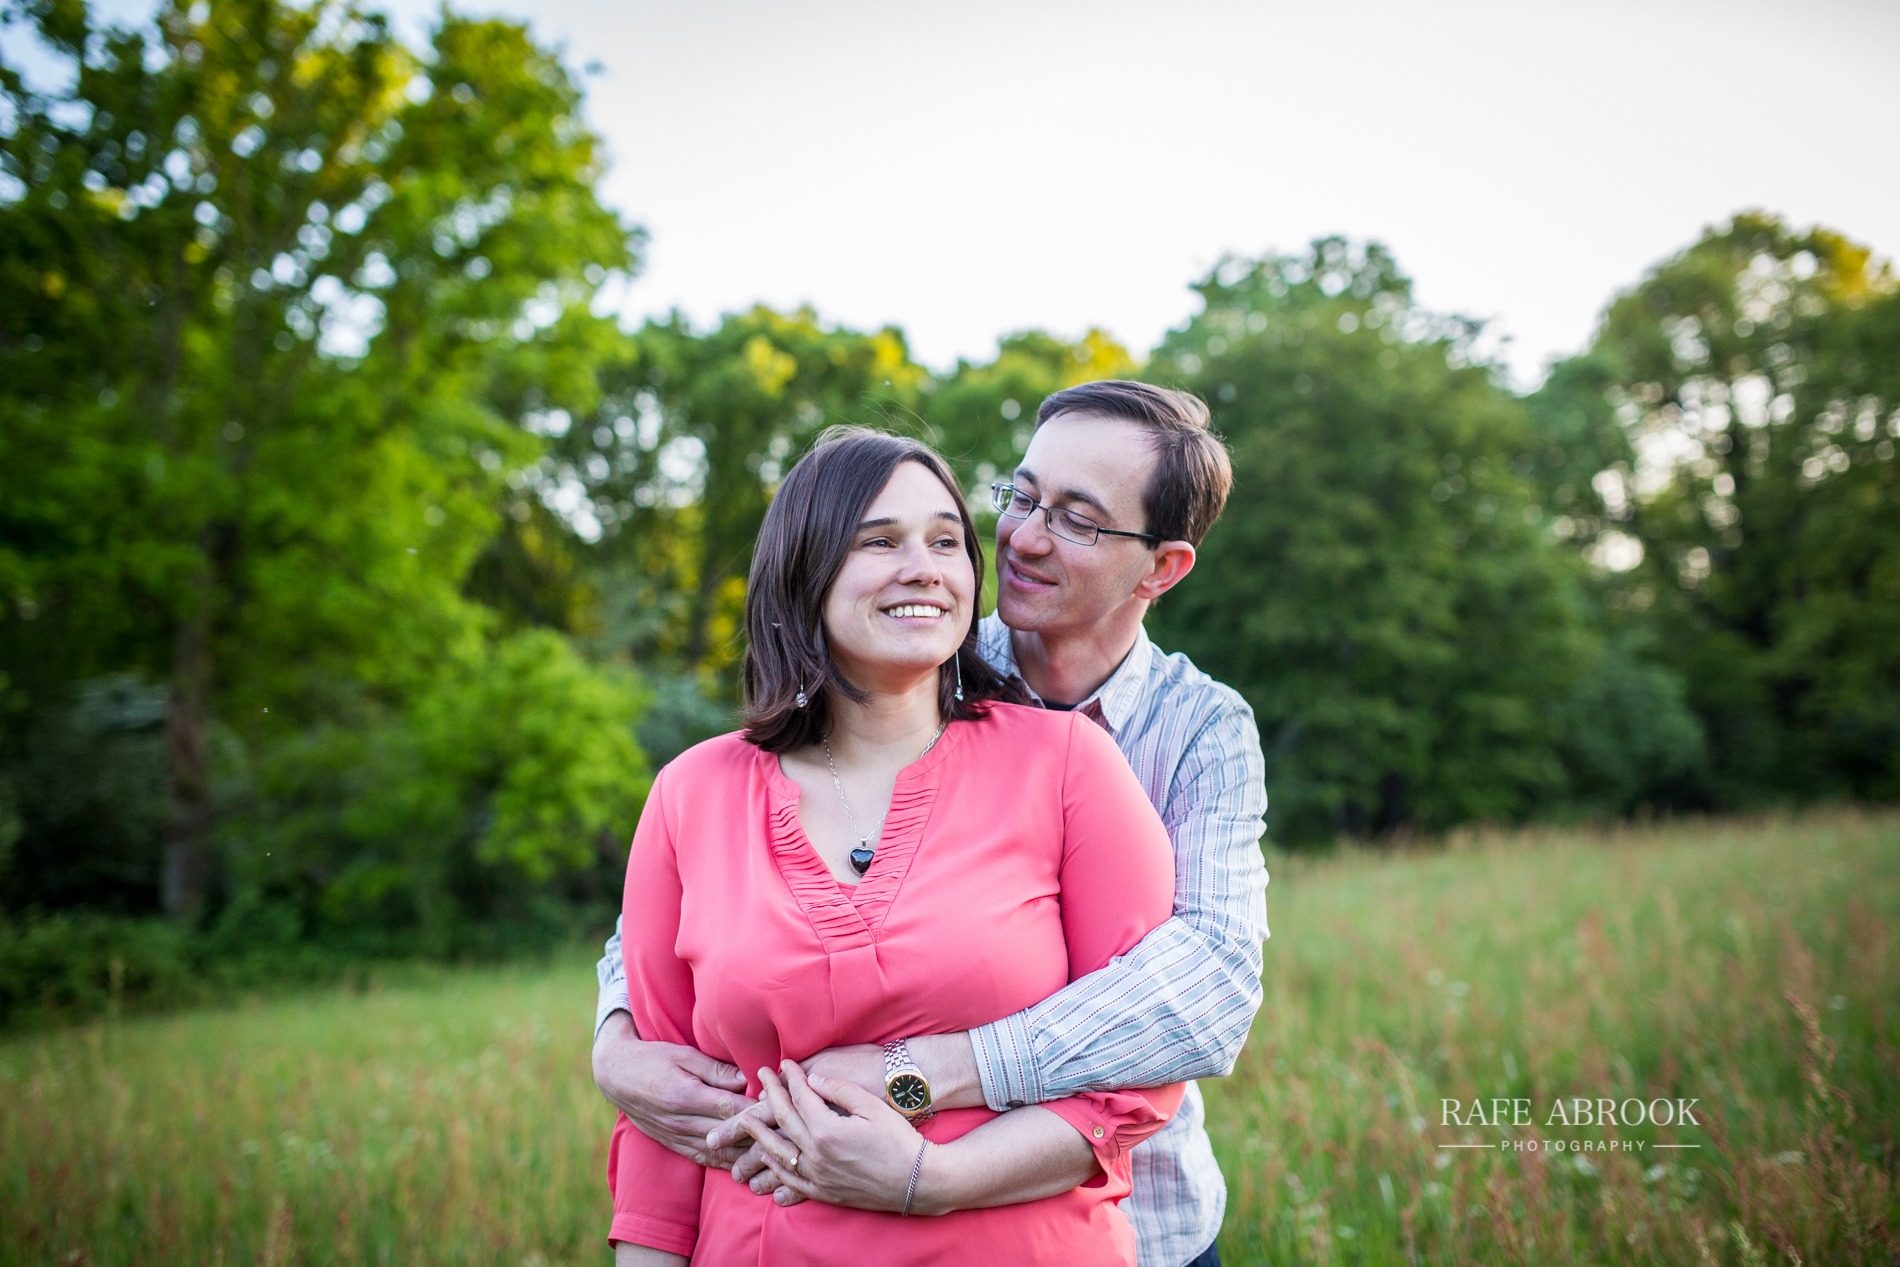 david & hannah engagement shoot hampstead heath london-2015.jpg